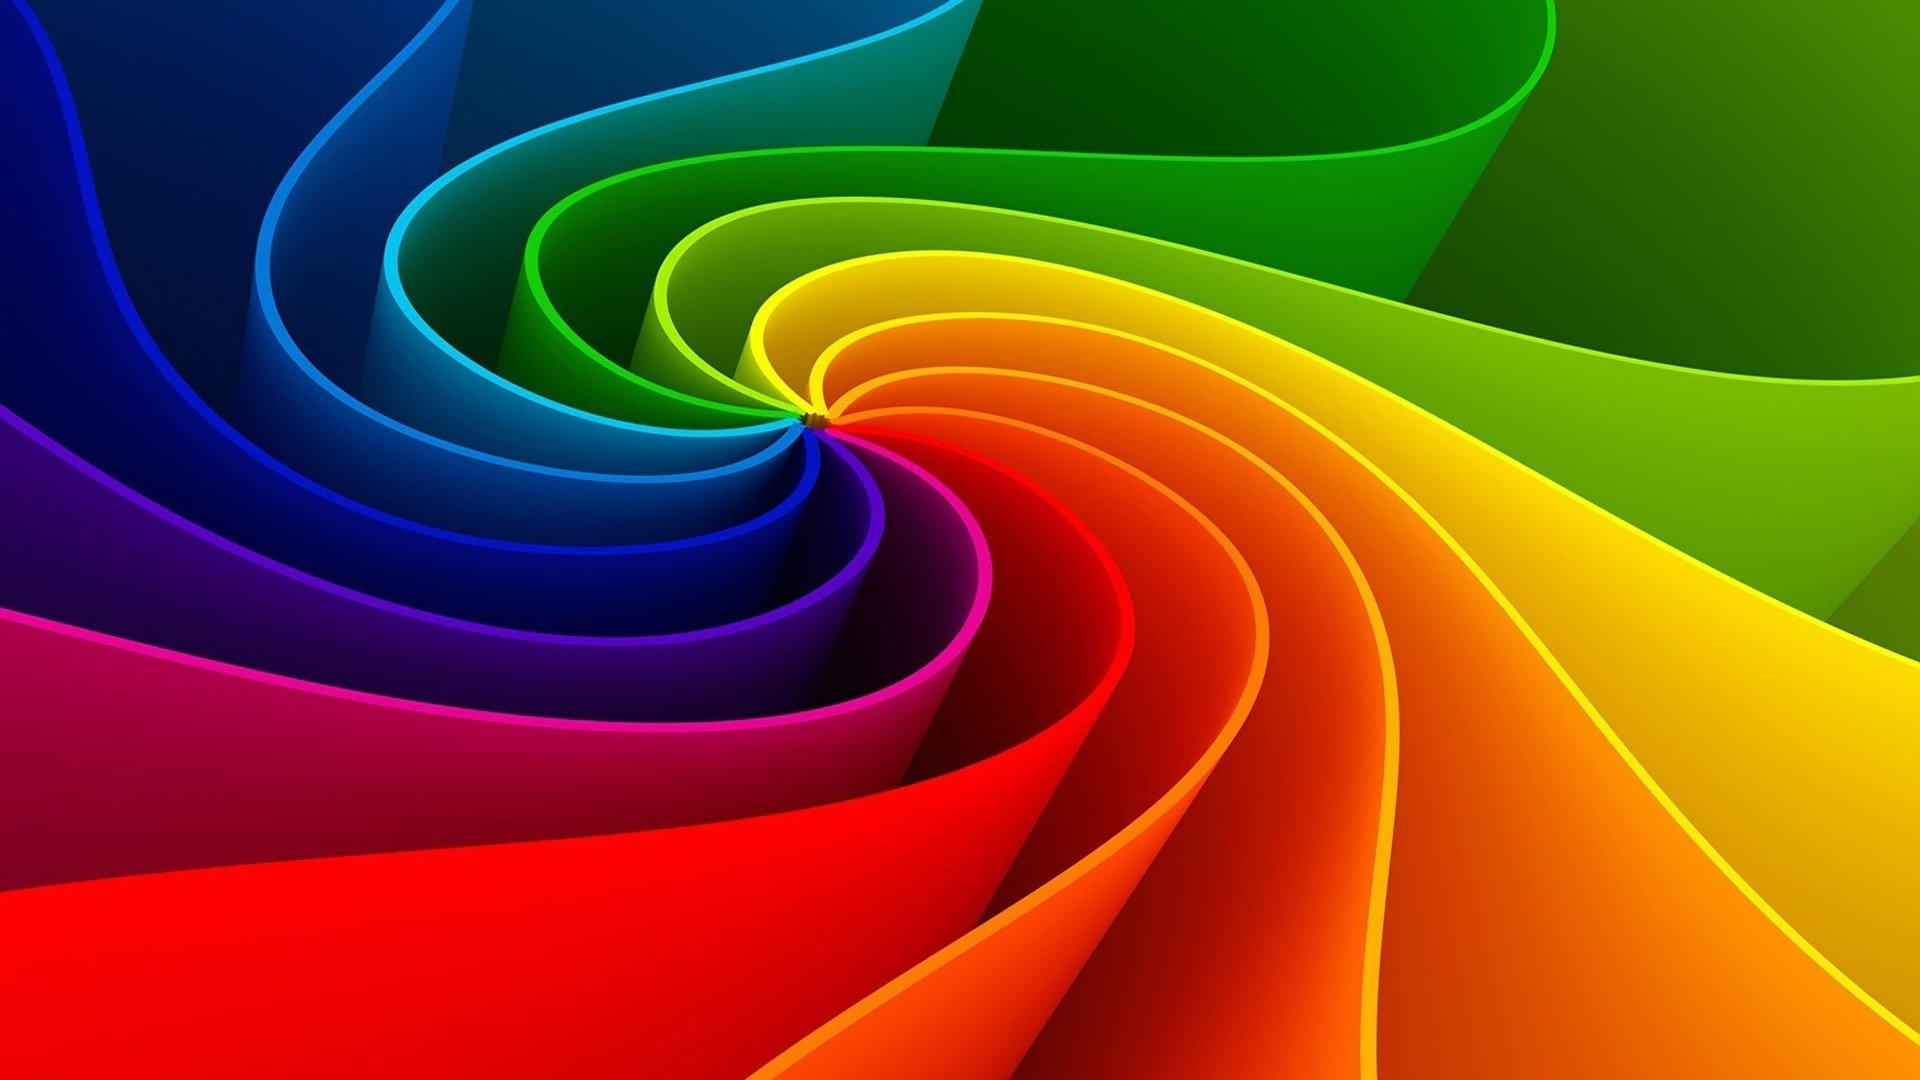 Amazing Abstract Rainbow   High Definition Wallpapers   HD wallpapers 1920x1080